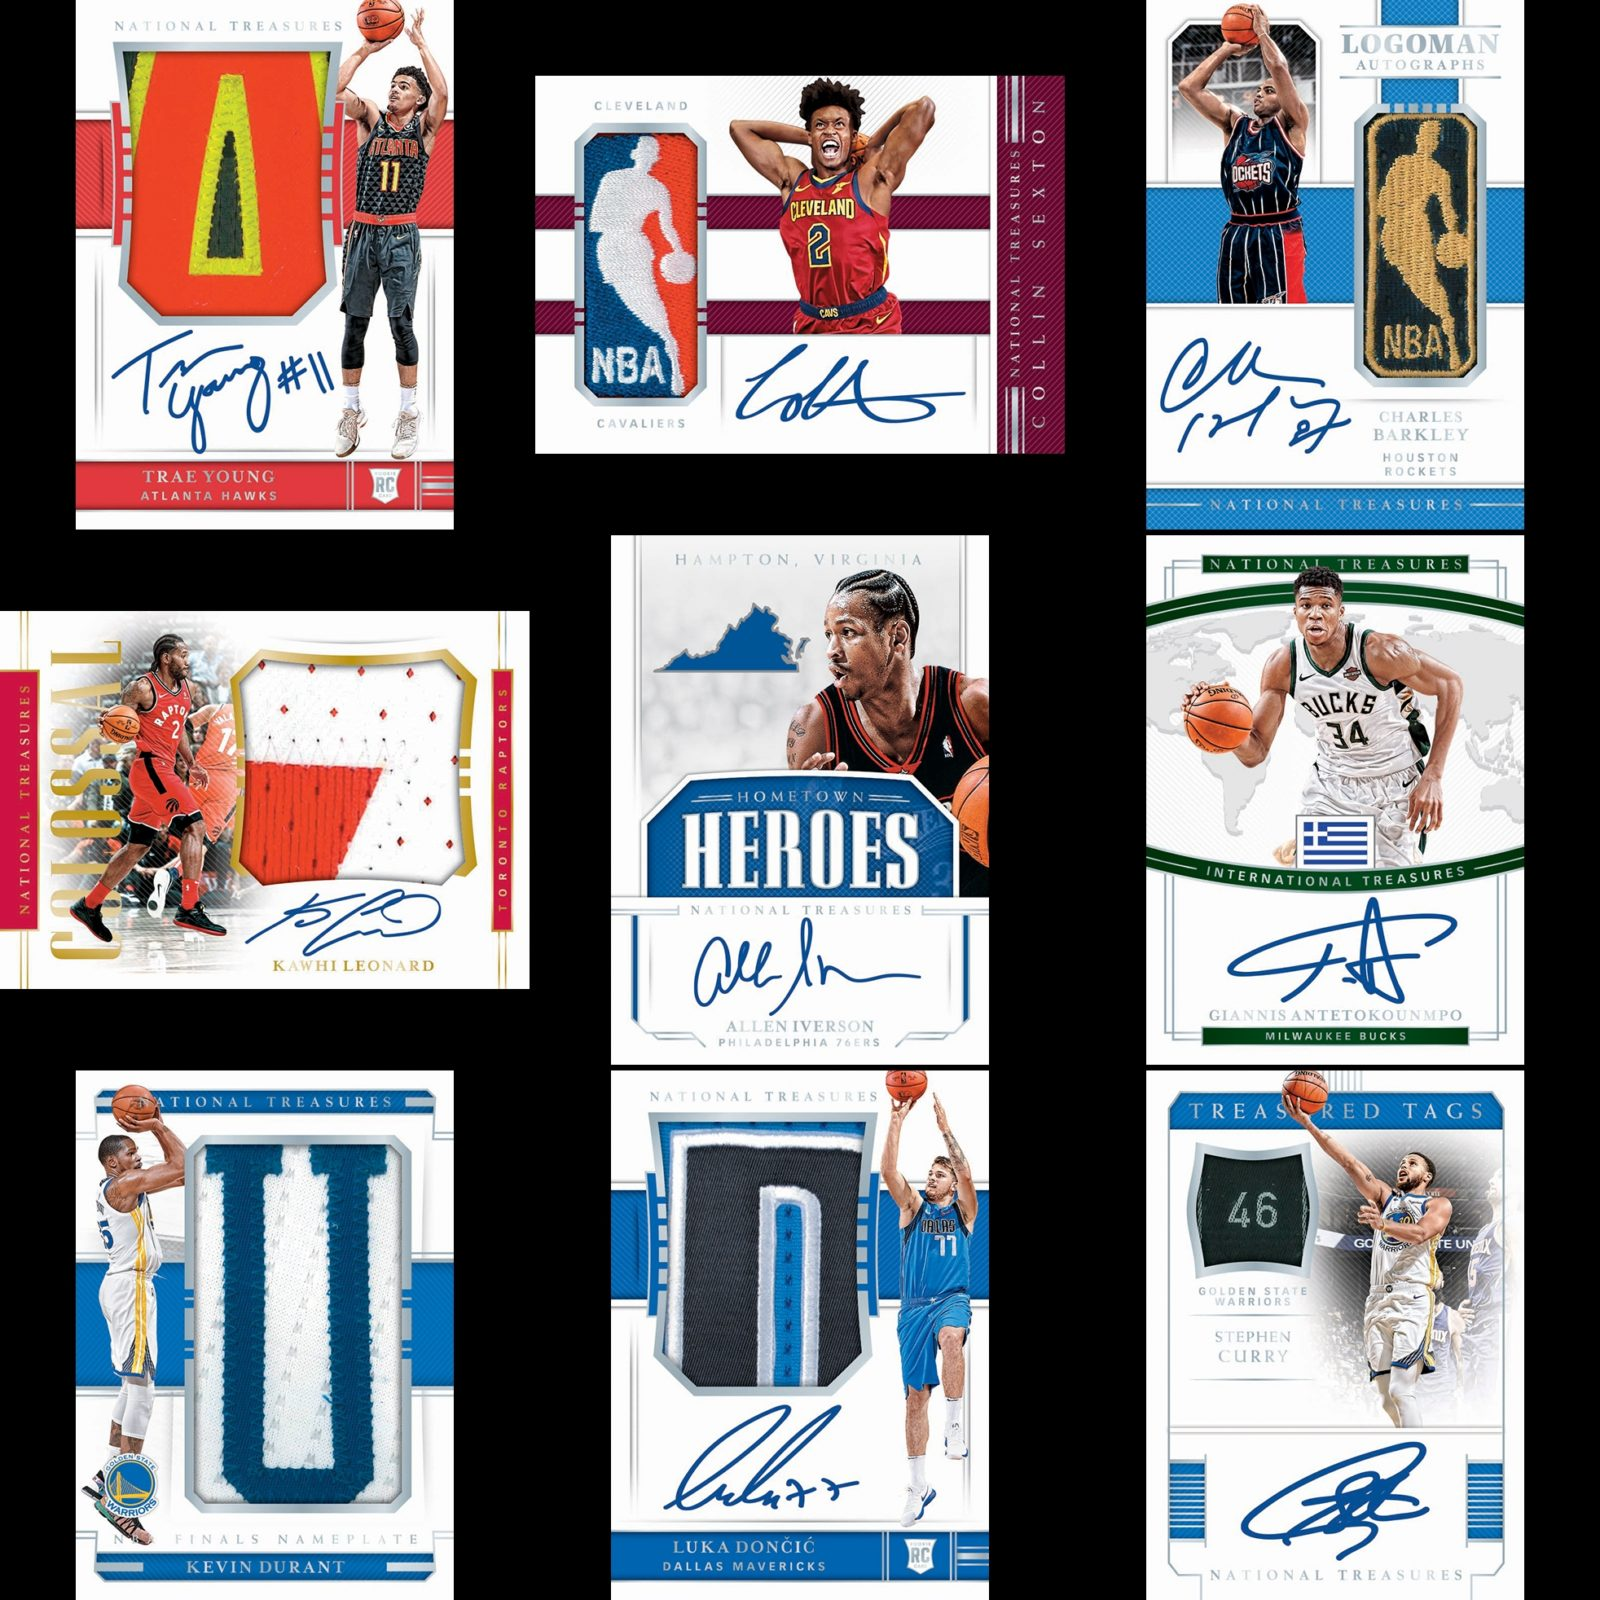 Topps 4 Four 8 Cards//Pack Pack LOT: 2012 Magic Hobby Football Cards Factory Sealed Hobby Packs